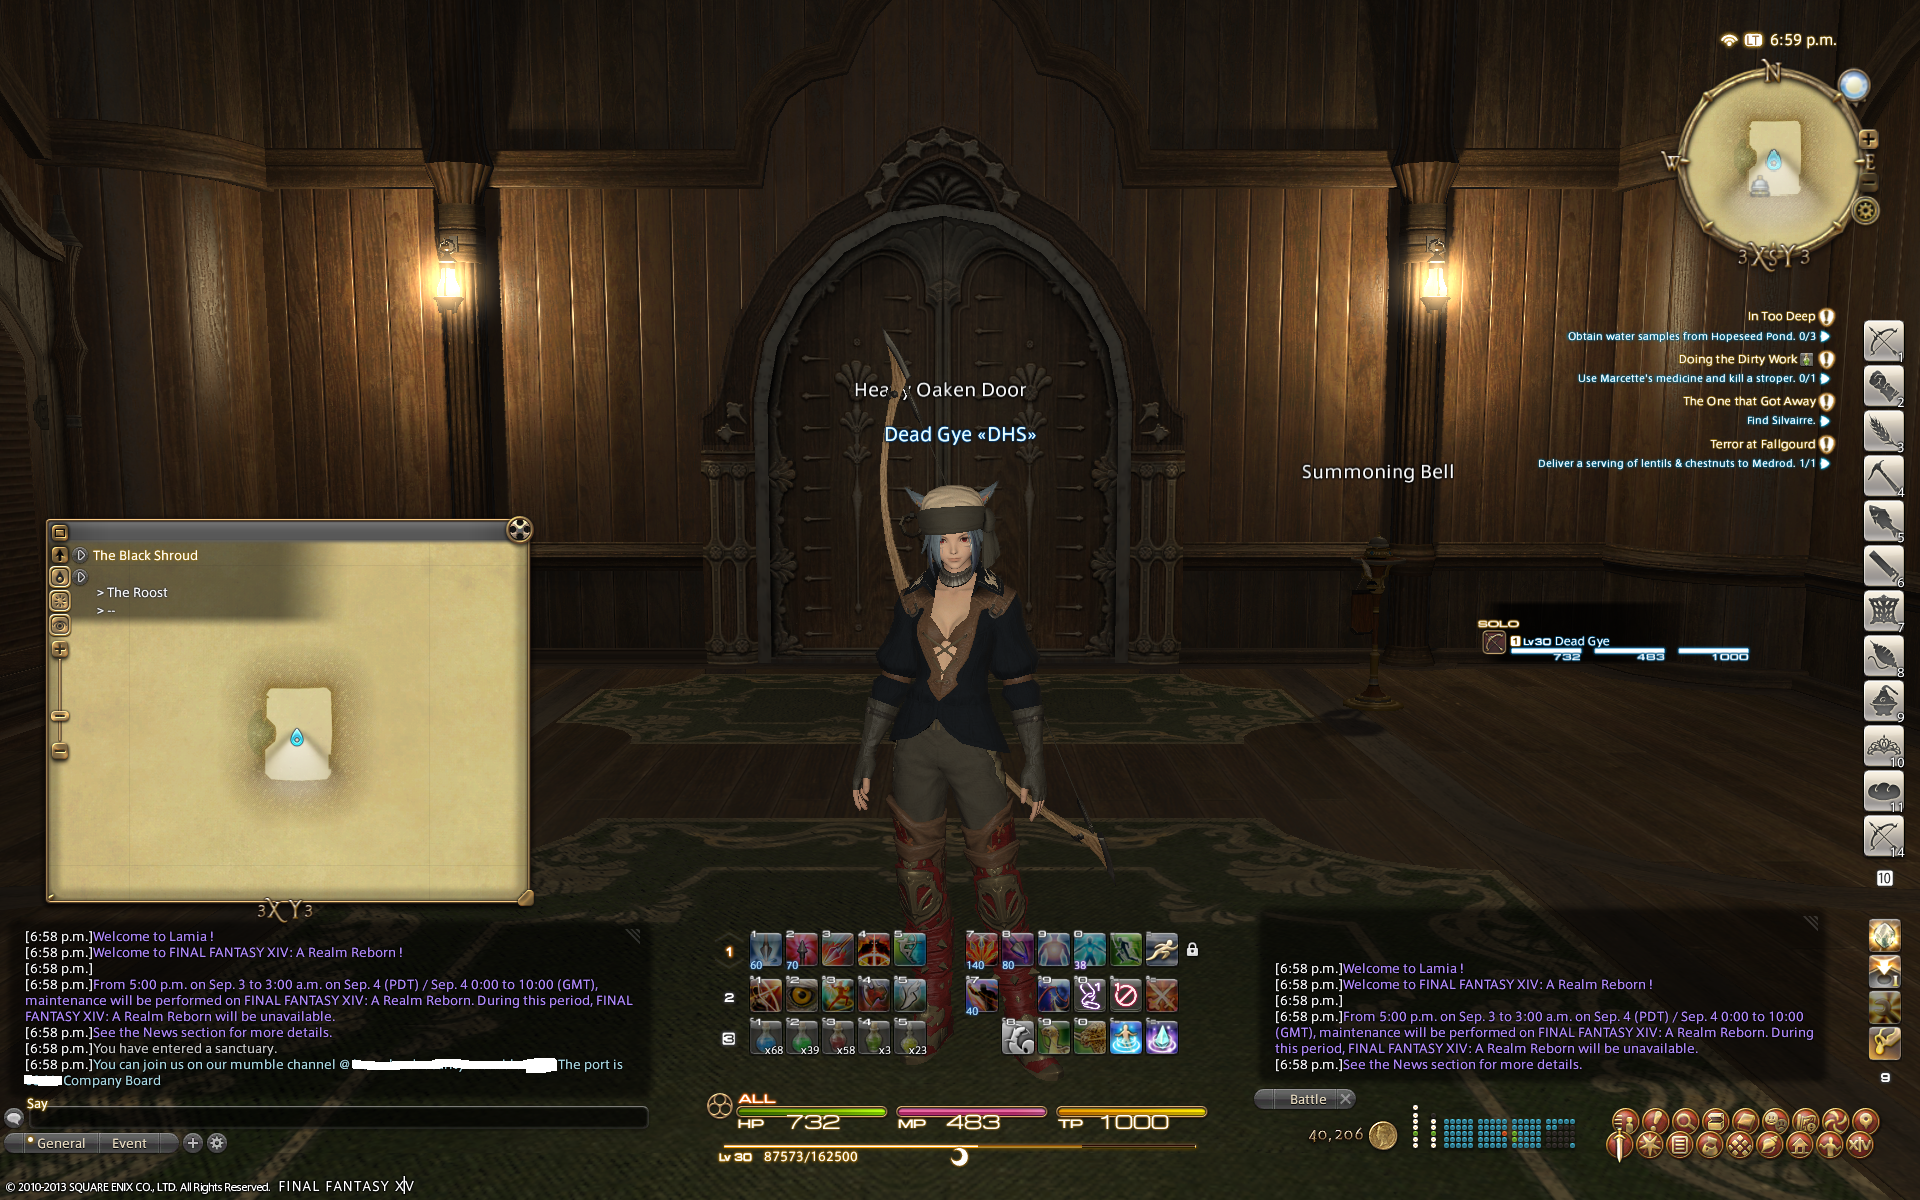 deadgye ffxiv make petbar command toggle your visibility pictures remember anyone post know